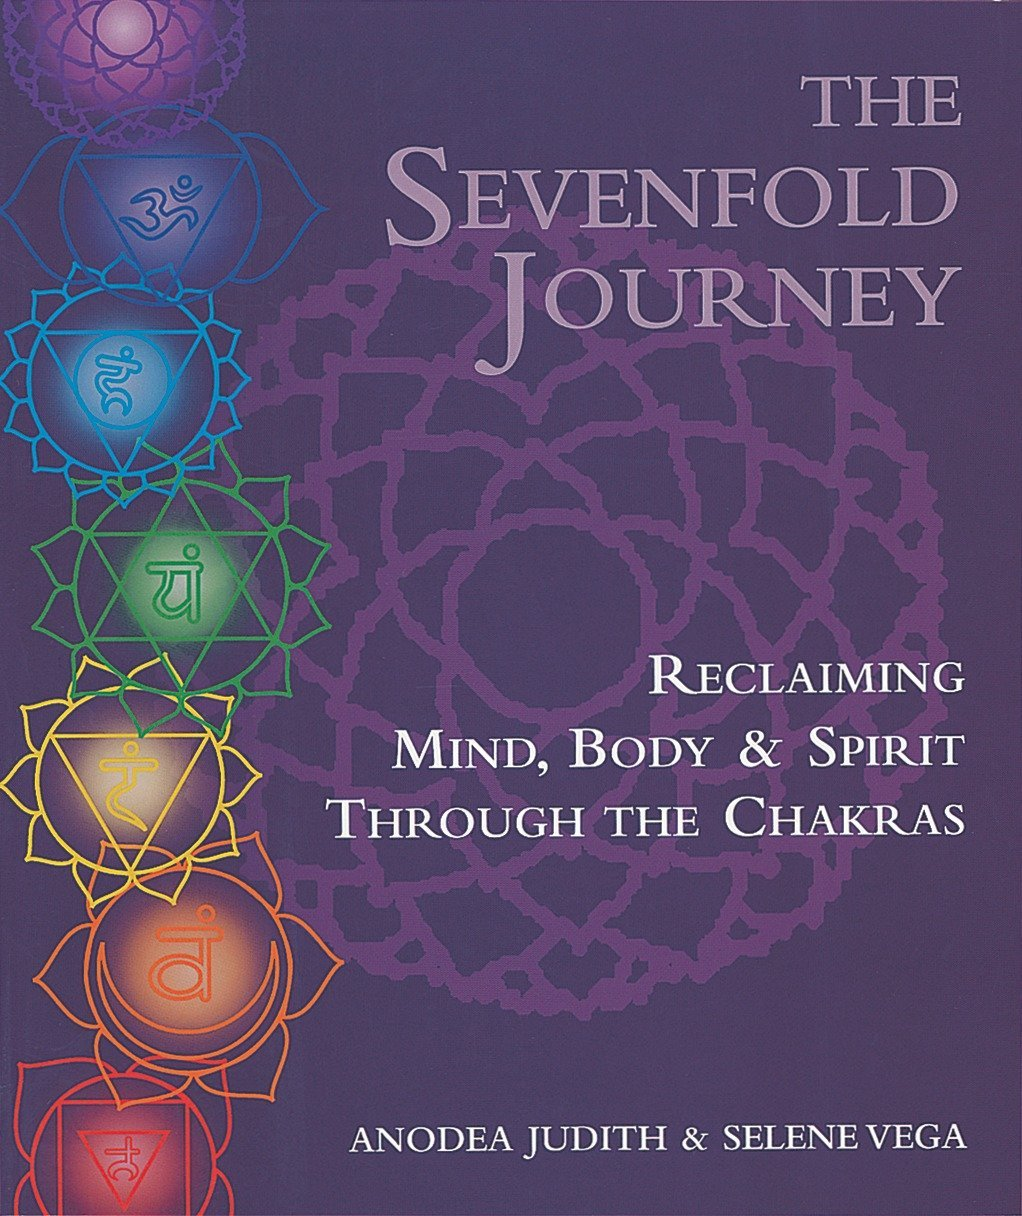 Sevenfold Journey by Anodea Judith & Selene Vega